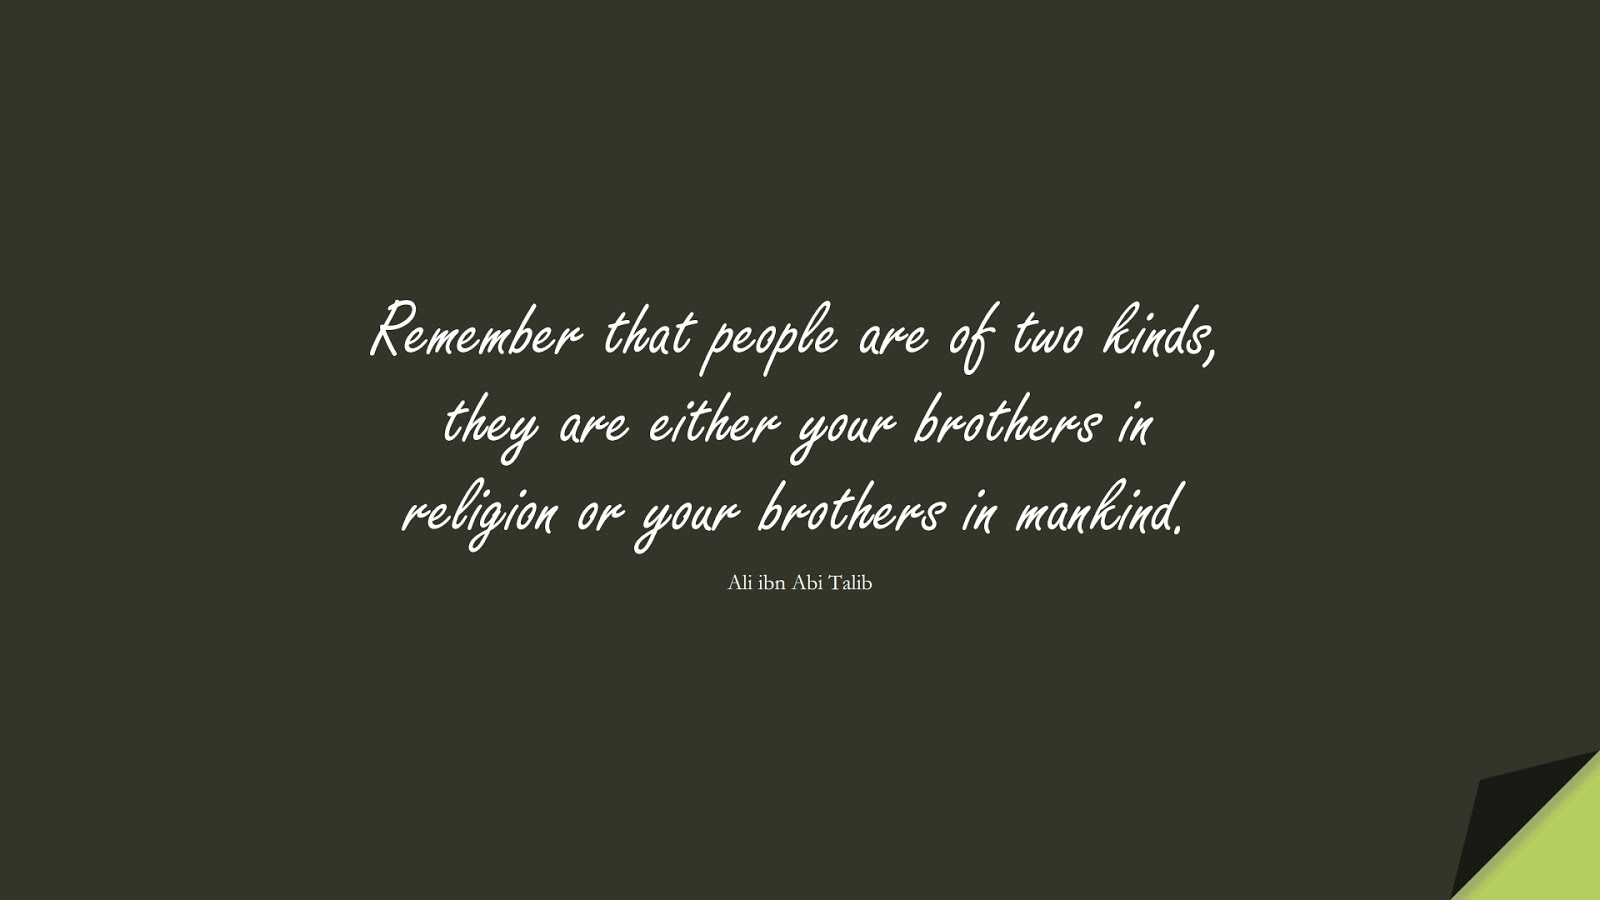 Remember that people are of two kinds, they are either your brothers in religion or your brothers in mankind. (Ali ibn Abi Talib);  #AliQuotes